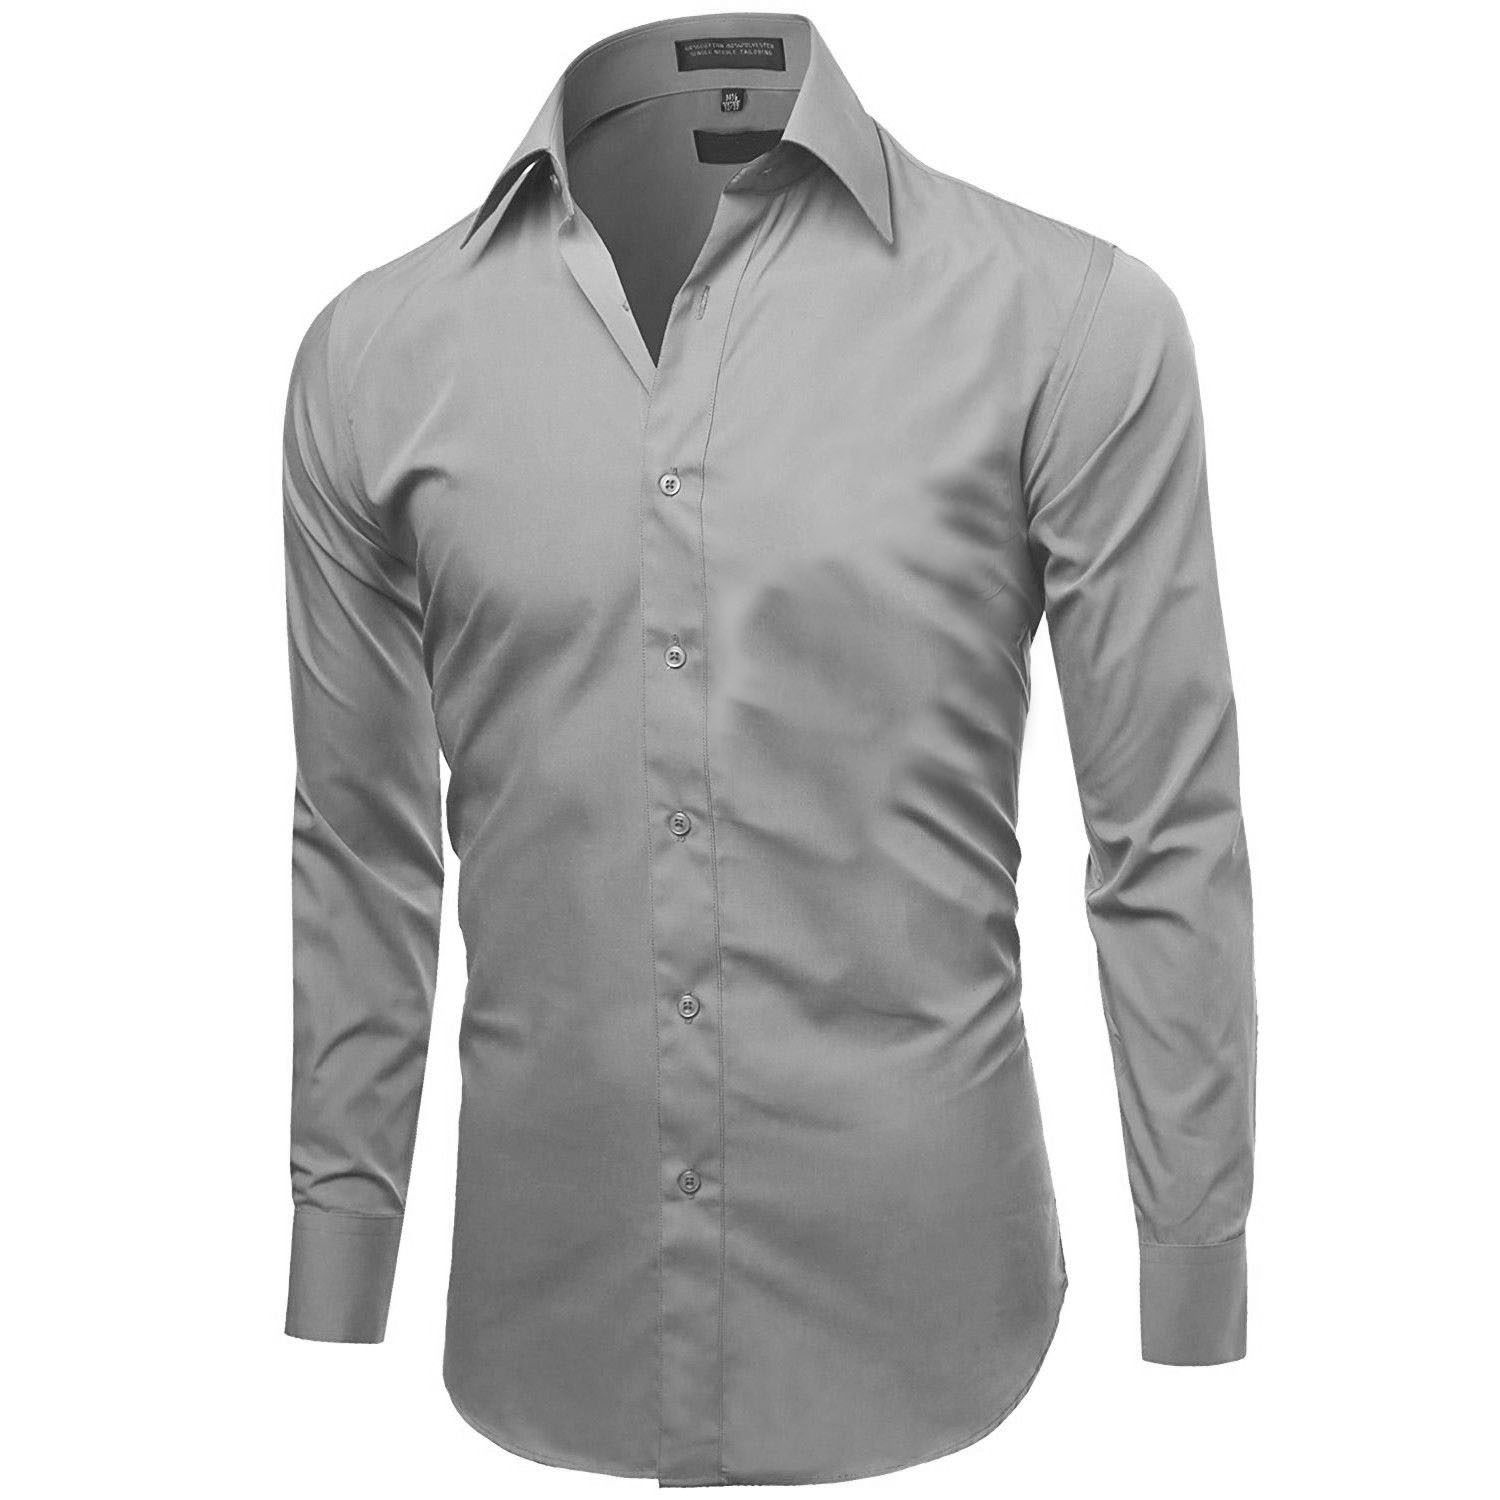 Omega-Italy-Men-039-s-Premium-Slim-Fit-Button-Up-Long-Sleeve-Solid-Color-Dress-Shirt thumbnail 73